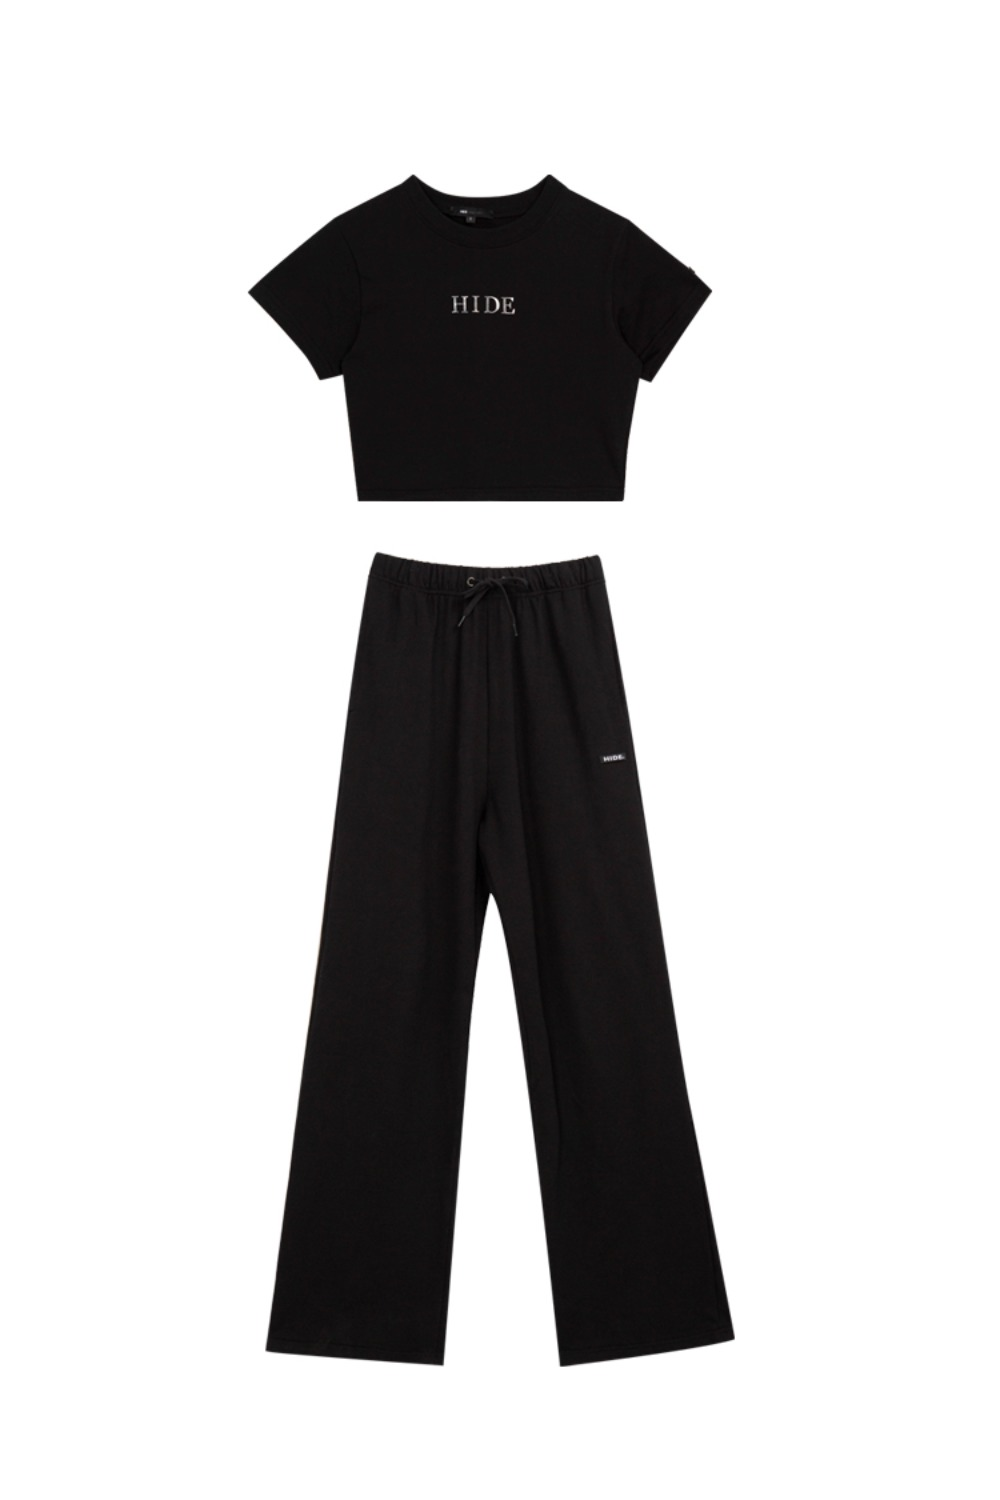 HIDE Mirror Crop Top & Wide Pants BLACK